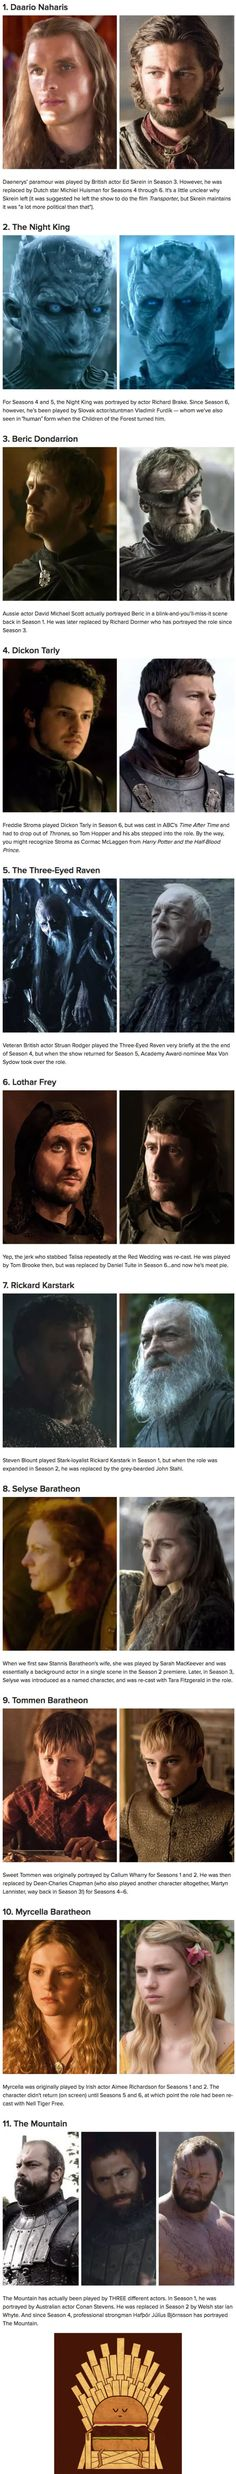 "11 ""Game Of Thrones"" Characters that were re-casted - Imgur"